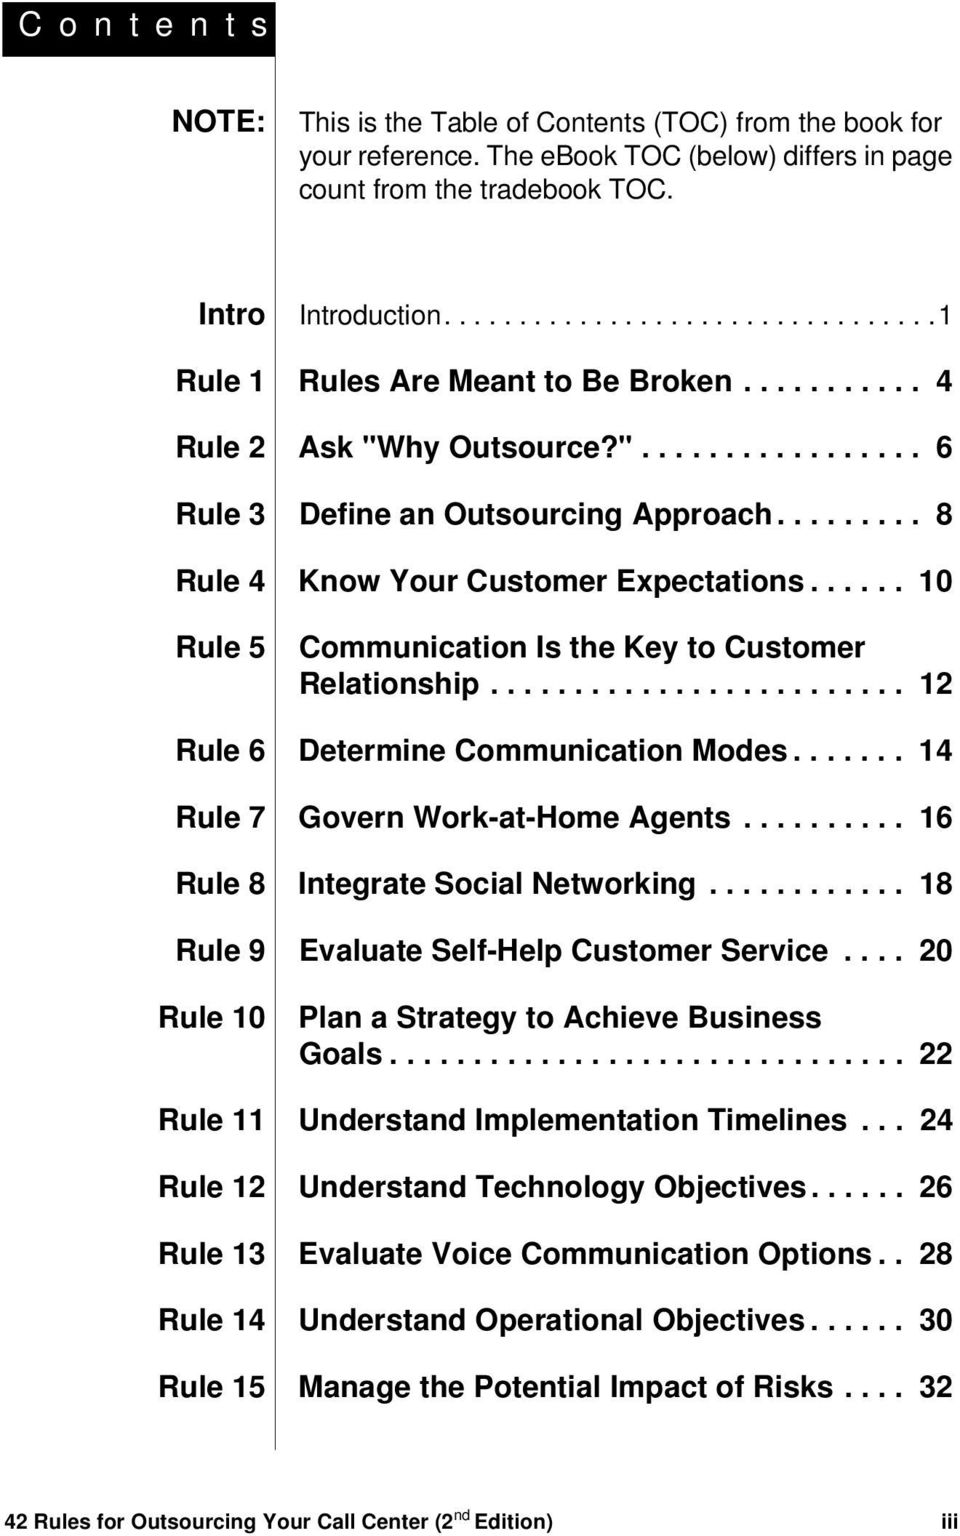 ........ 8 Rule 4 Know Your Customer Expectations...... 10 Rule 5 Communication Is the Key to Customer Relationship......................... 12 Rule 6 Determine Communication Modes.